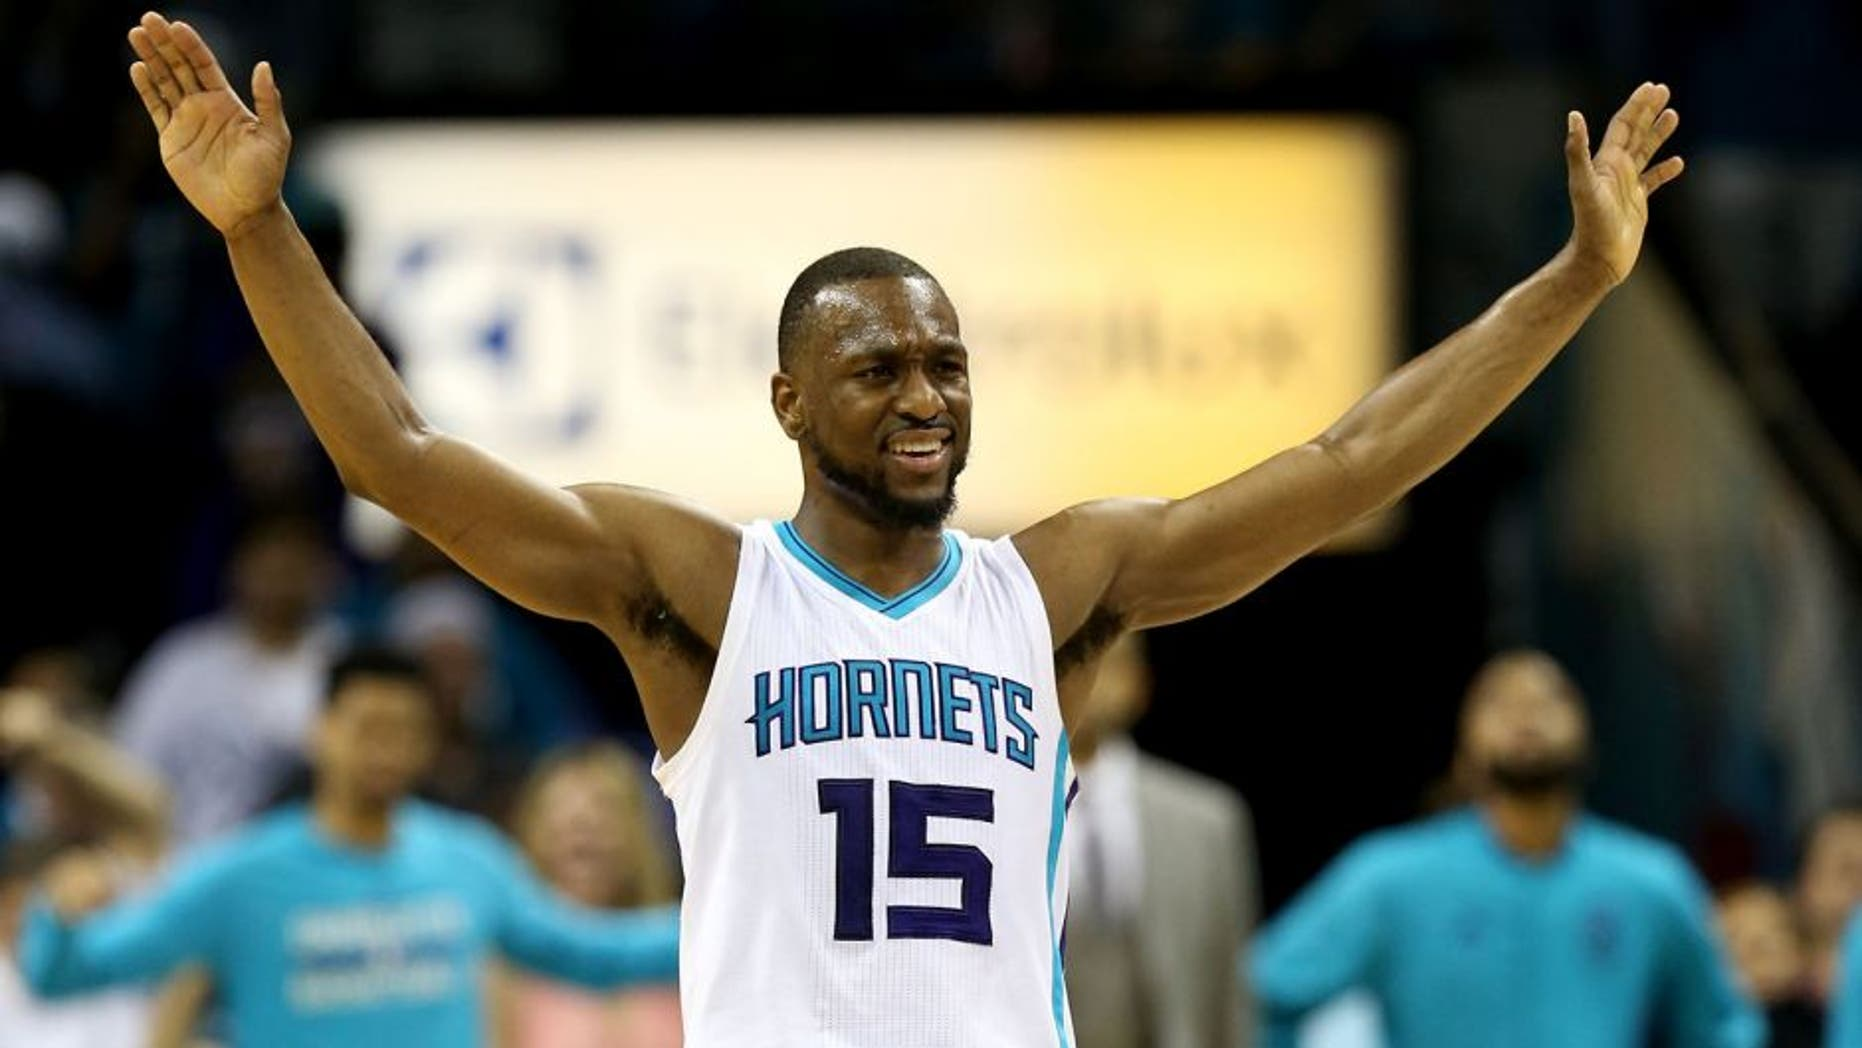 CHARLOTTE, NC - APRIL 25: Kemba Walker #15 of the Charlotte Hornets reacts to the crowd against the Miami Heat during game four of the Eastern Conference Quarterfinals of the 2016 NBA Playoffs at Time Warner Cable Arena on April 25, 2016 in Charlotte, North Carolina. NOTE TO USER: User expressly acknowledges and agrees that, by downloading and or using this photograph, User is consenting to the terms and conditions of the Getty Images License Agreement. (Photo by Streeter Lecka/Getty Images)